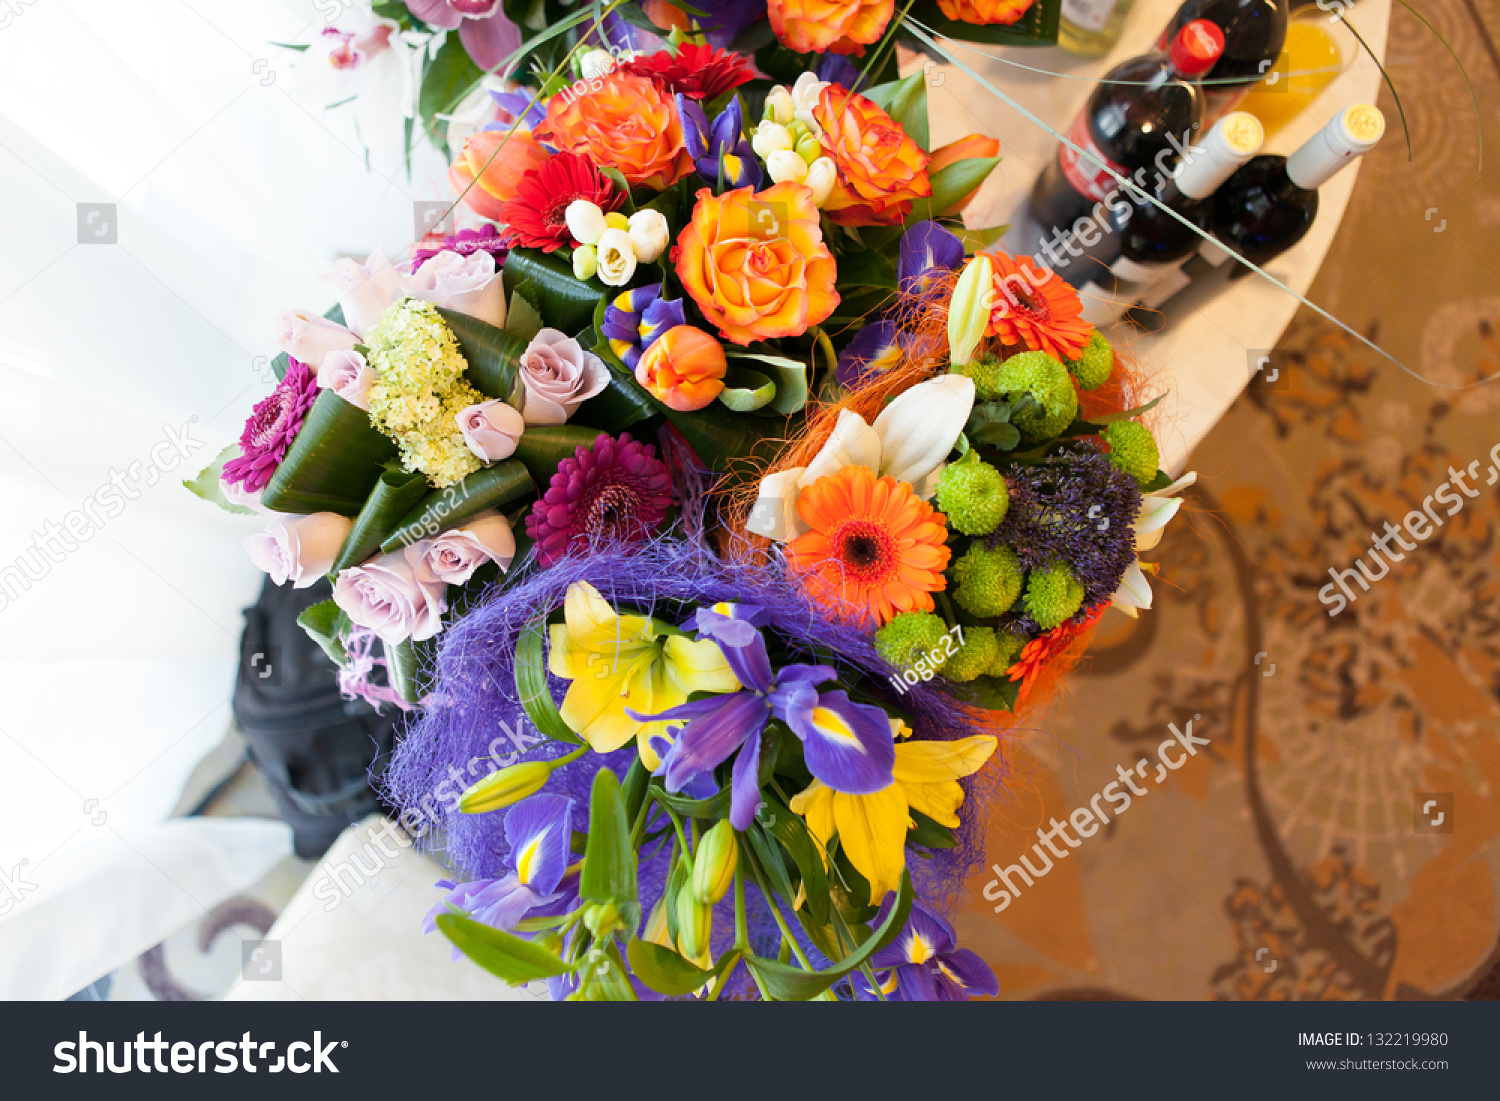 Different Types Flower Arrangements Isolated On Stock Photo Royalty